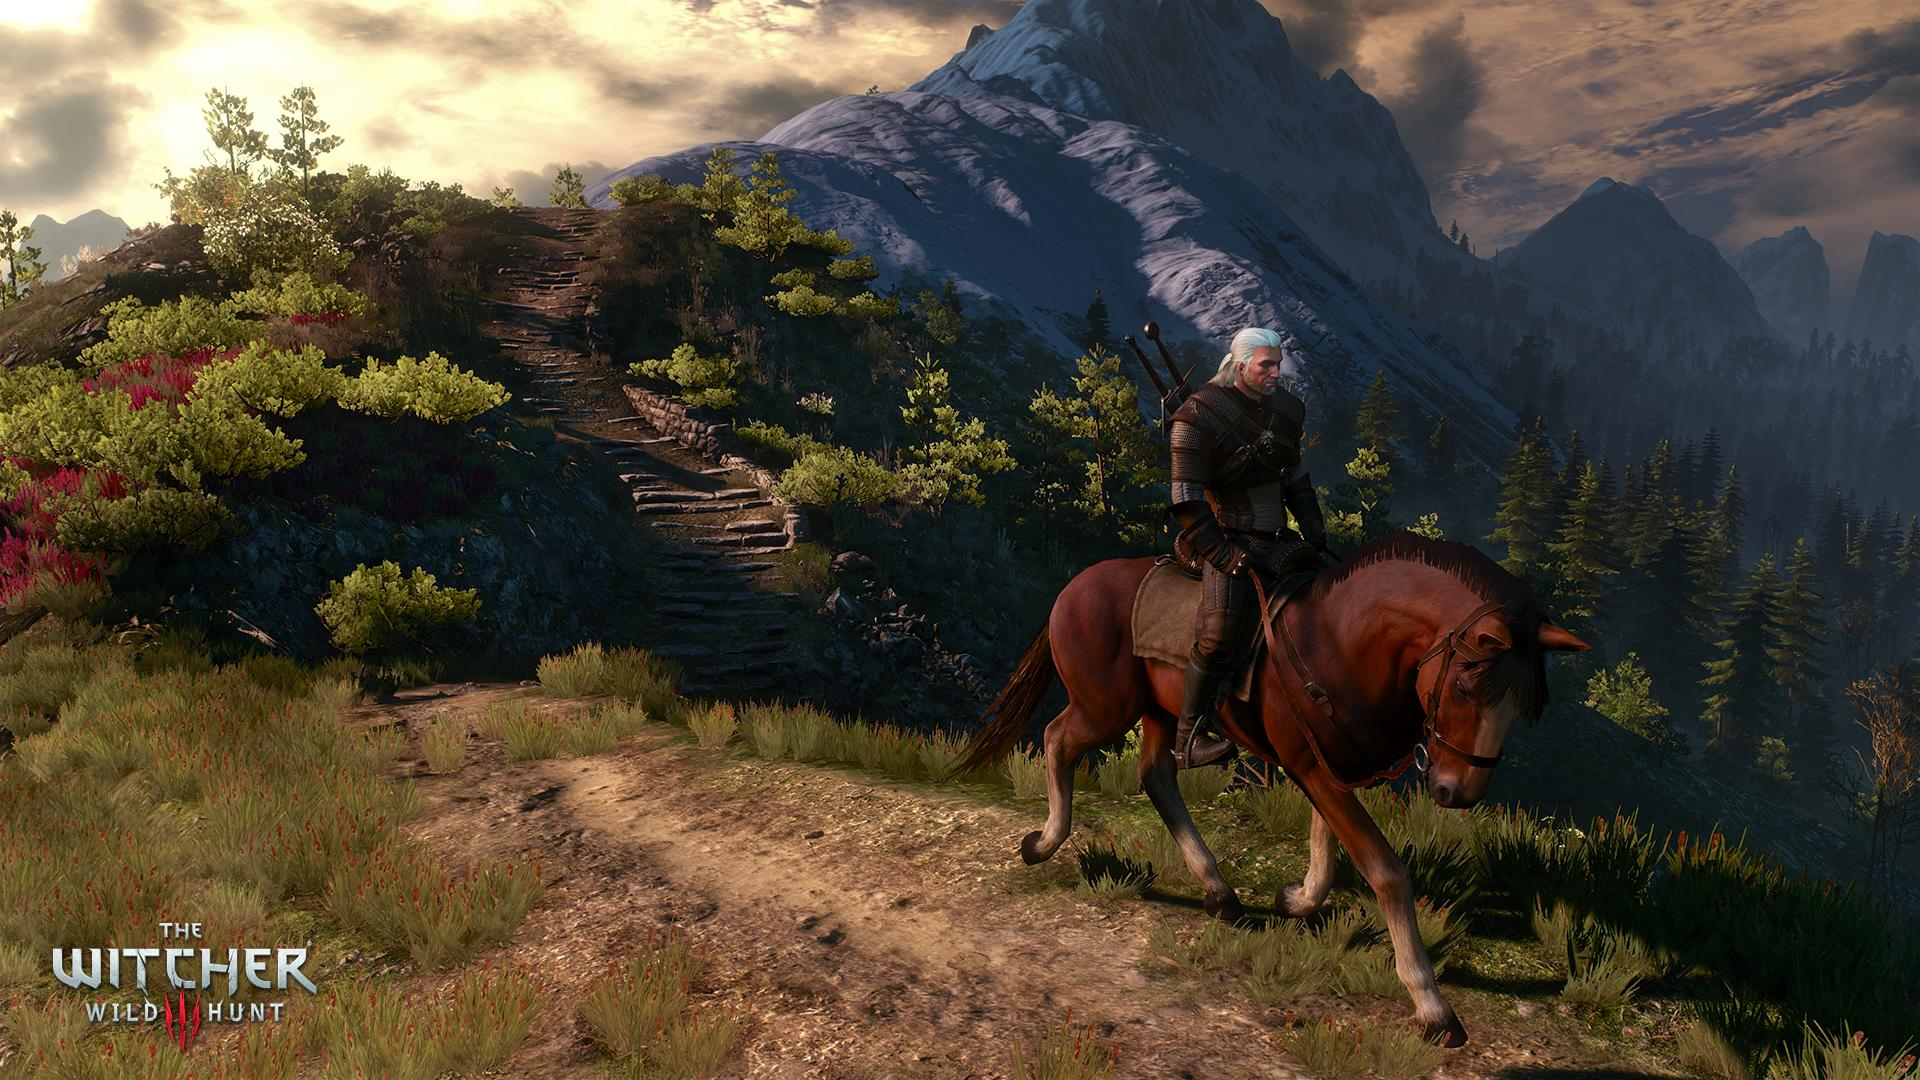 Xbox One Witcher 3 patch will lock frame rate at 30FPS